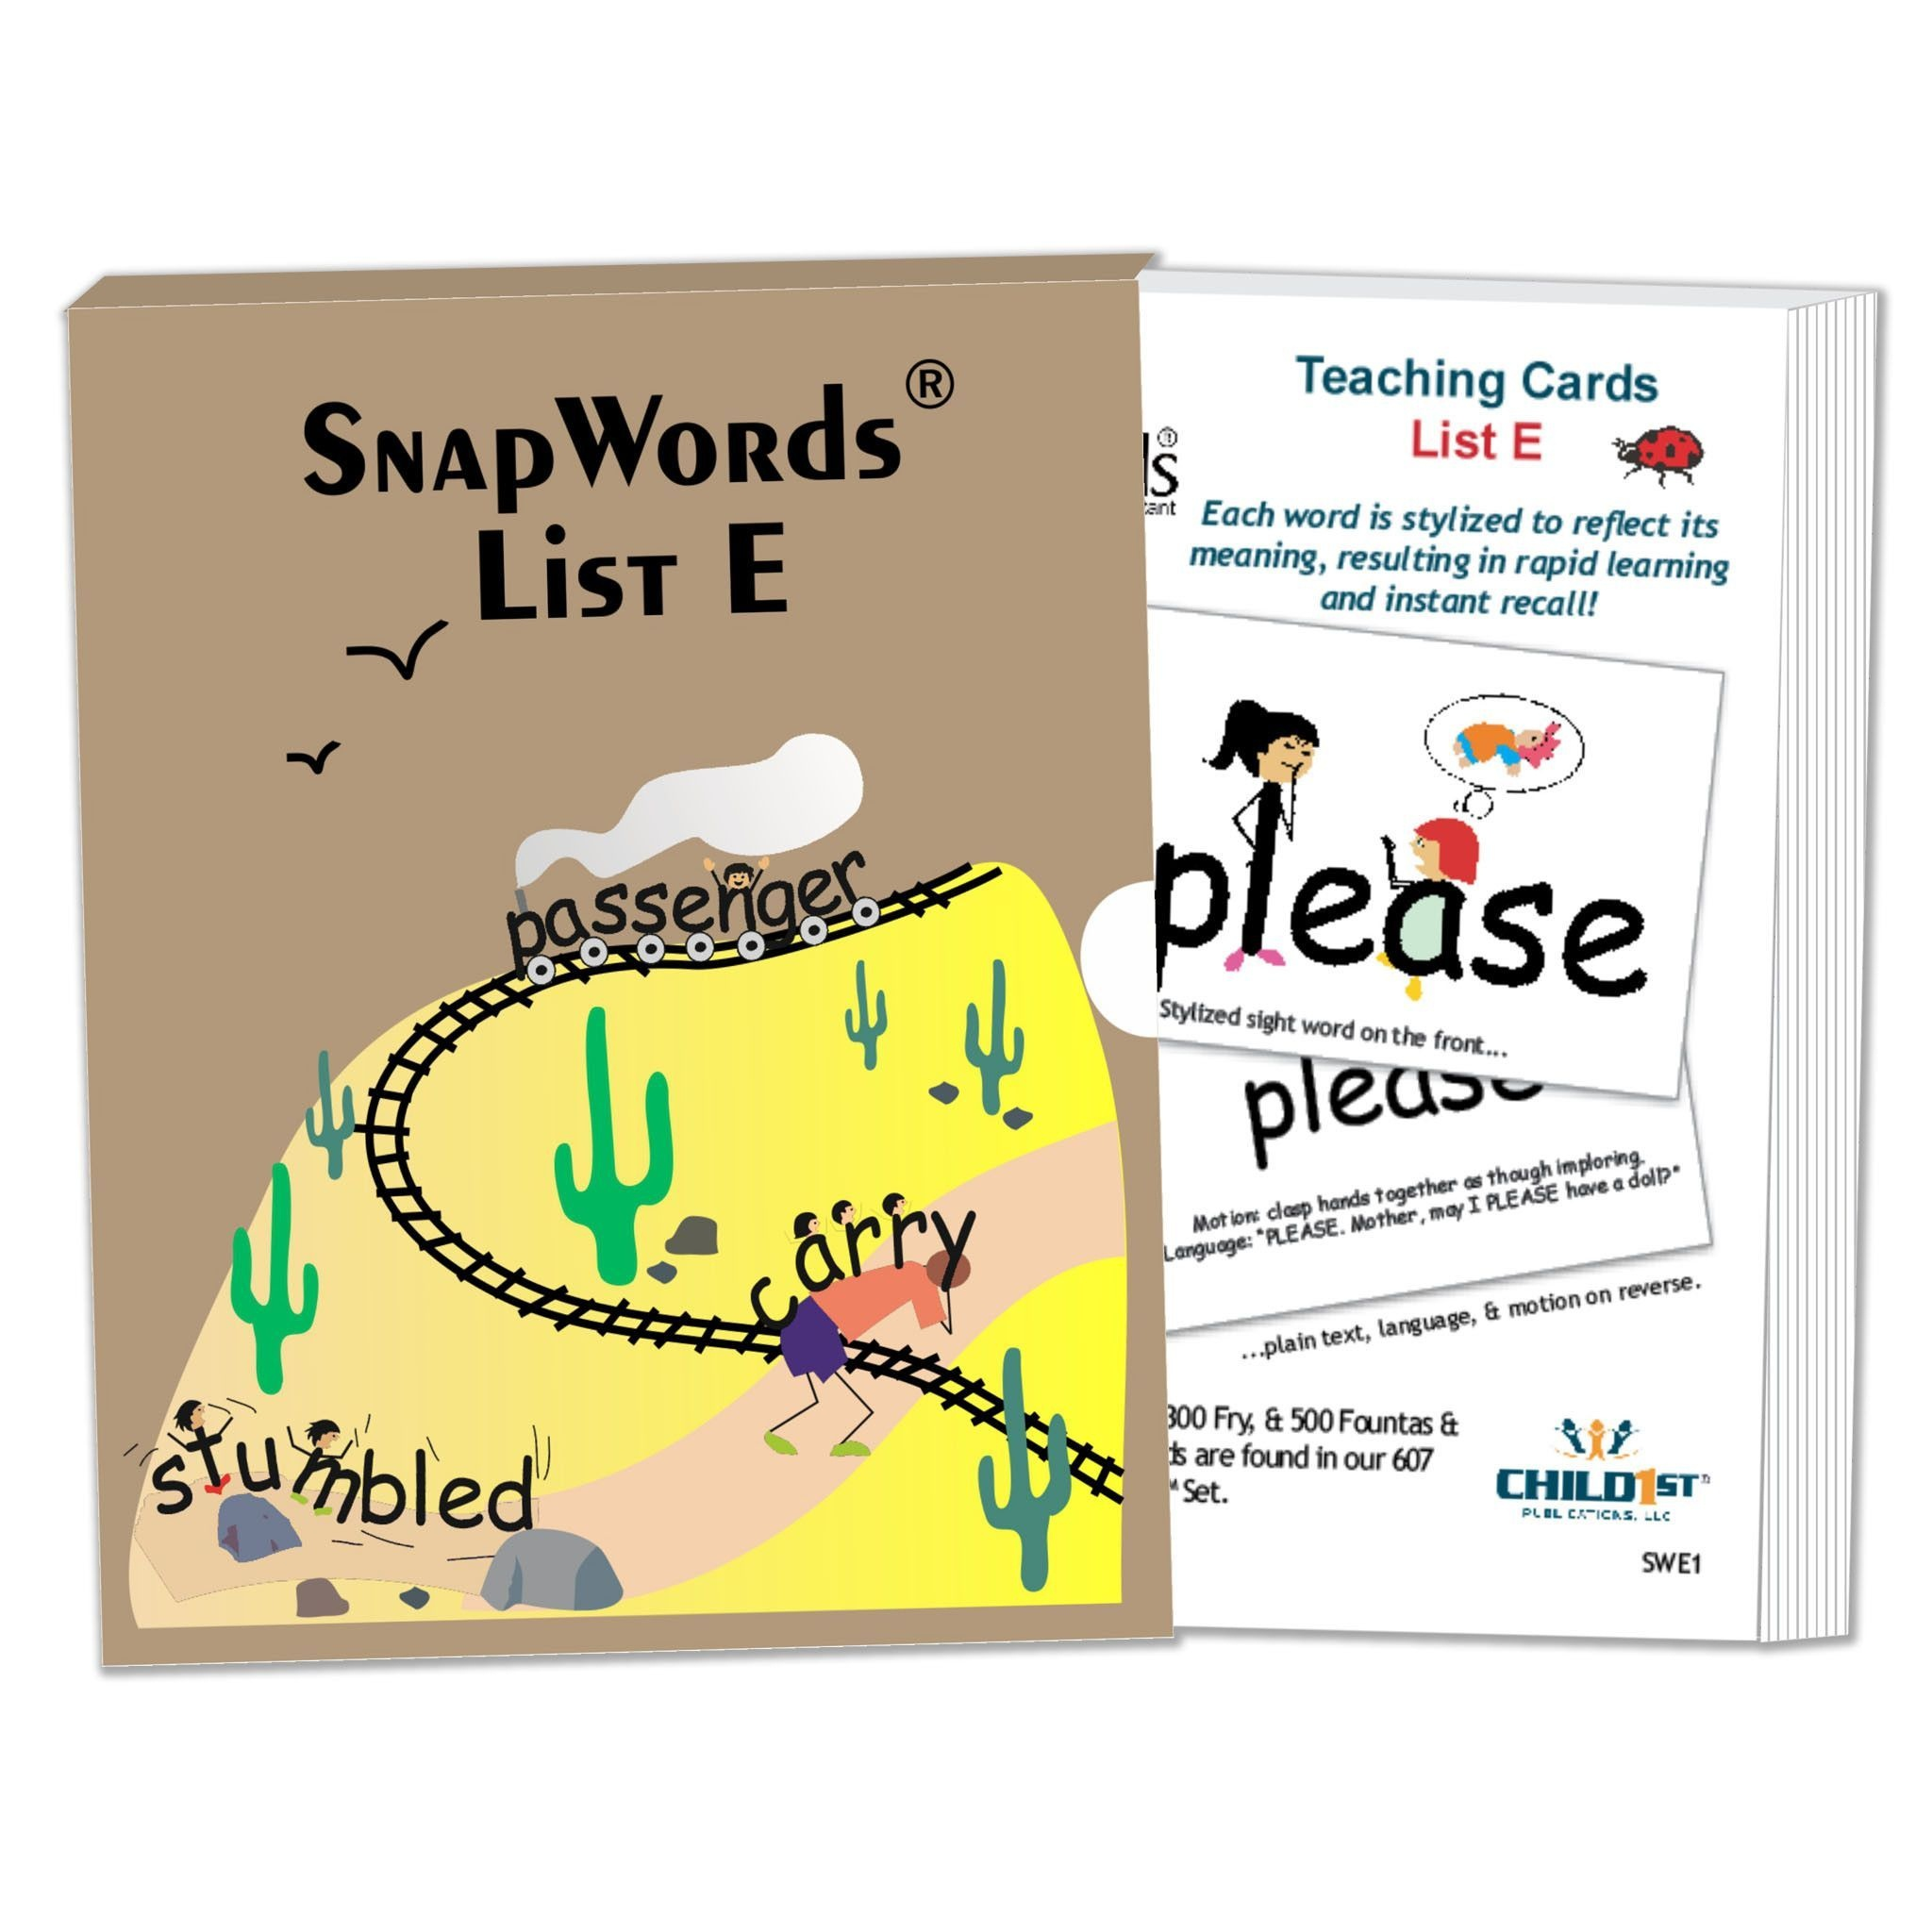 Snapwords® List E Teaching Cards   Products   Teaching, Cards, Sight - Free Printable Snapwords